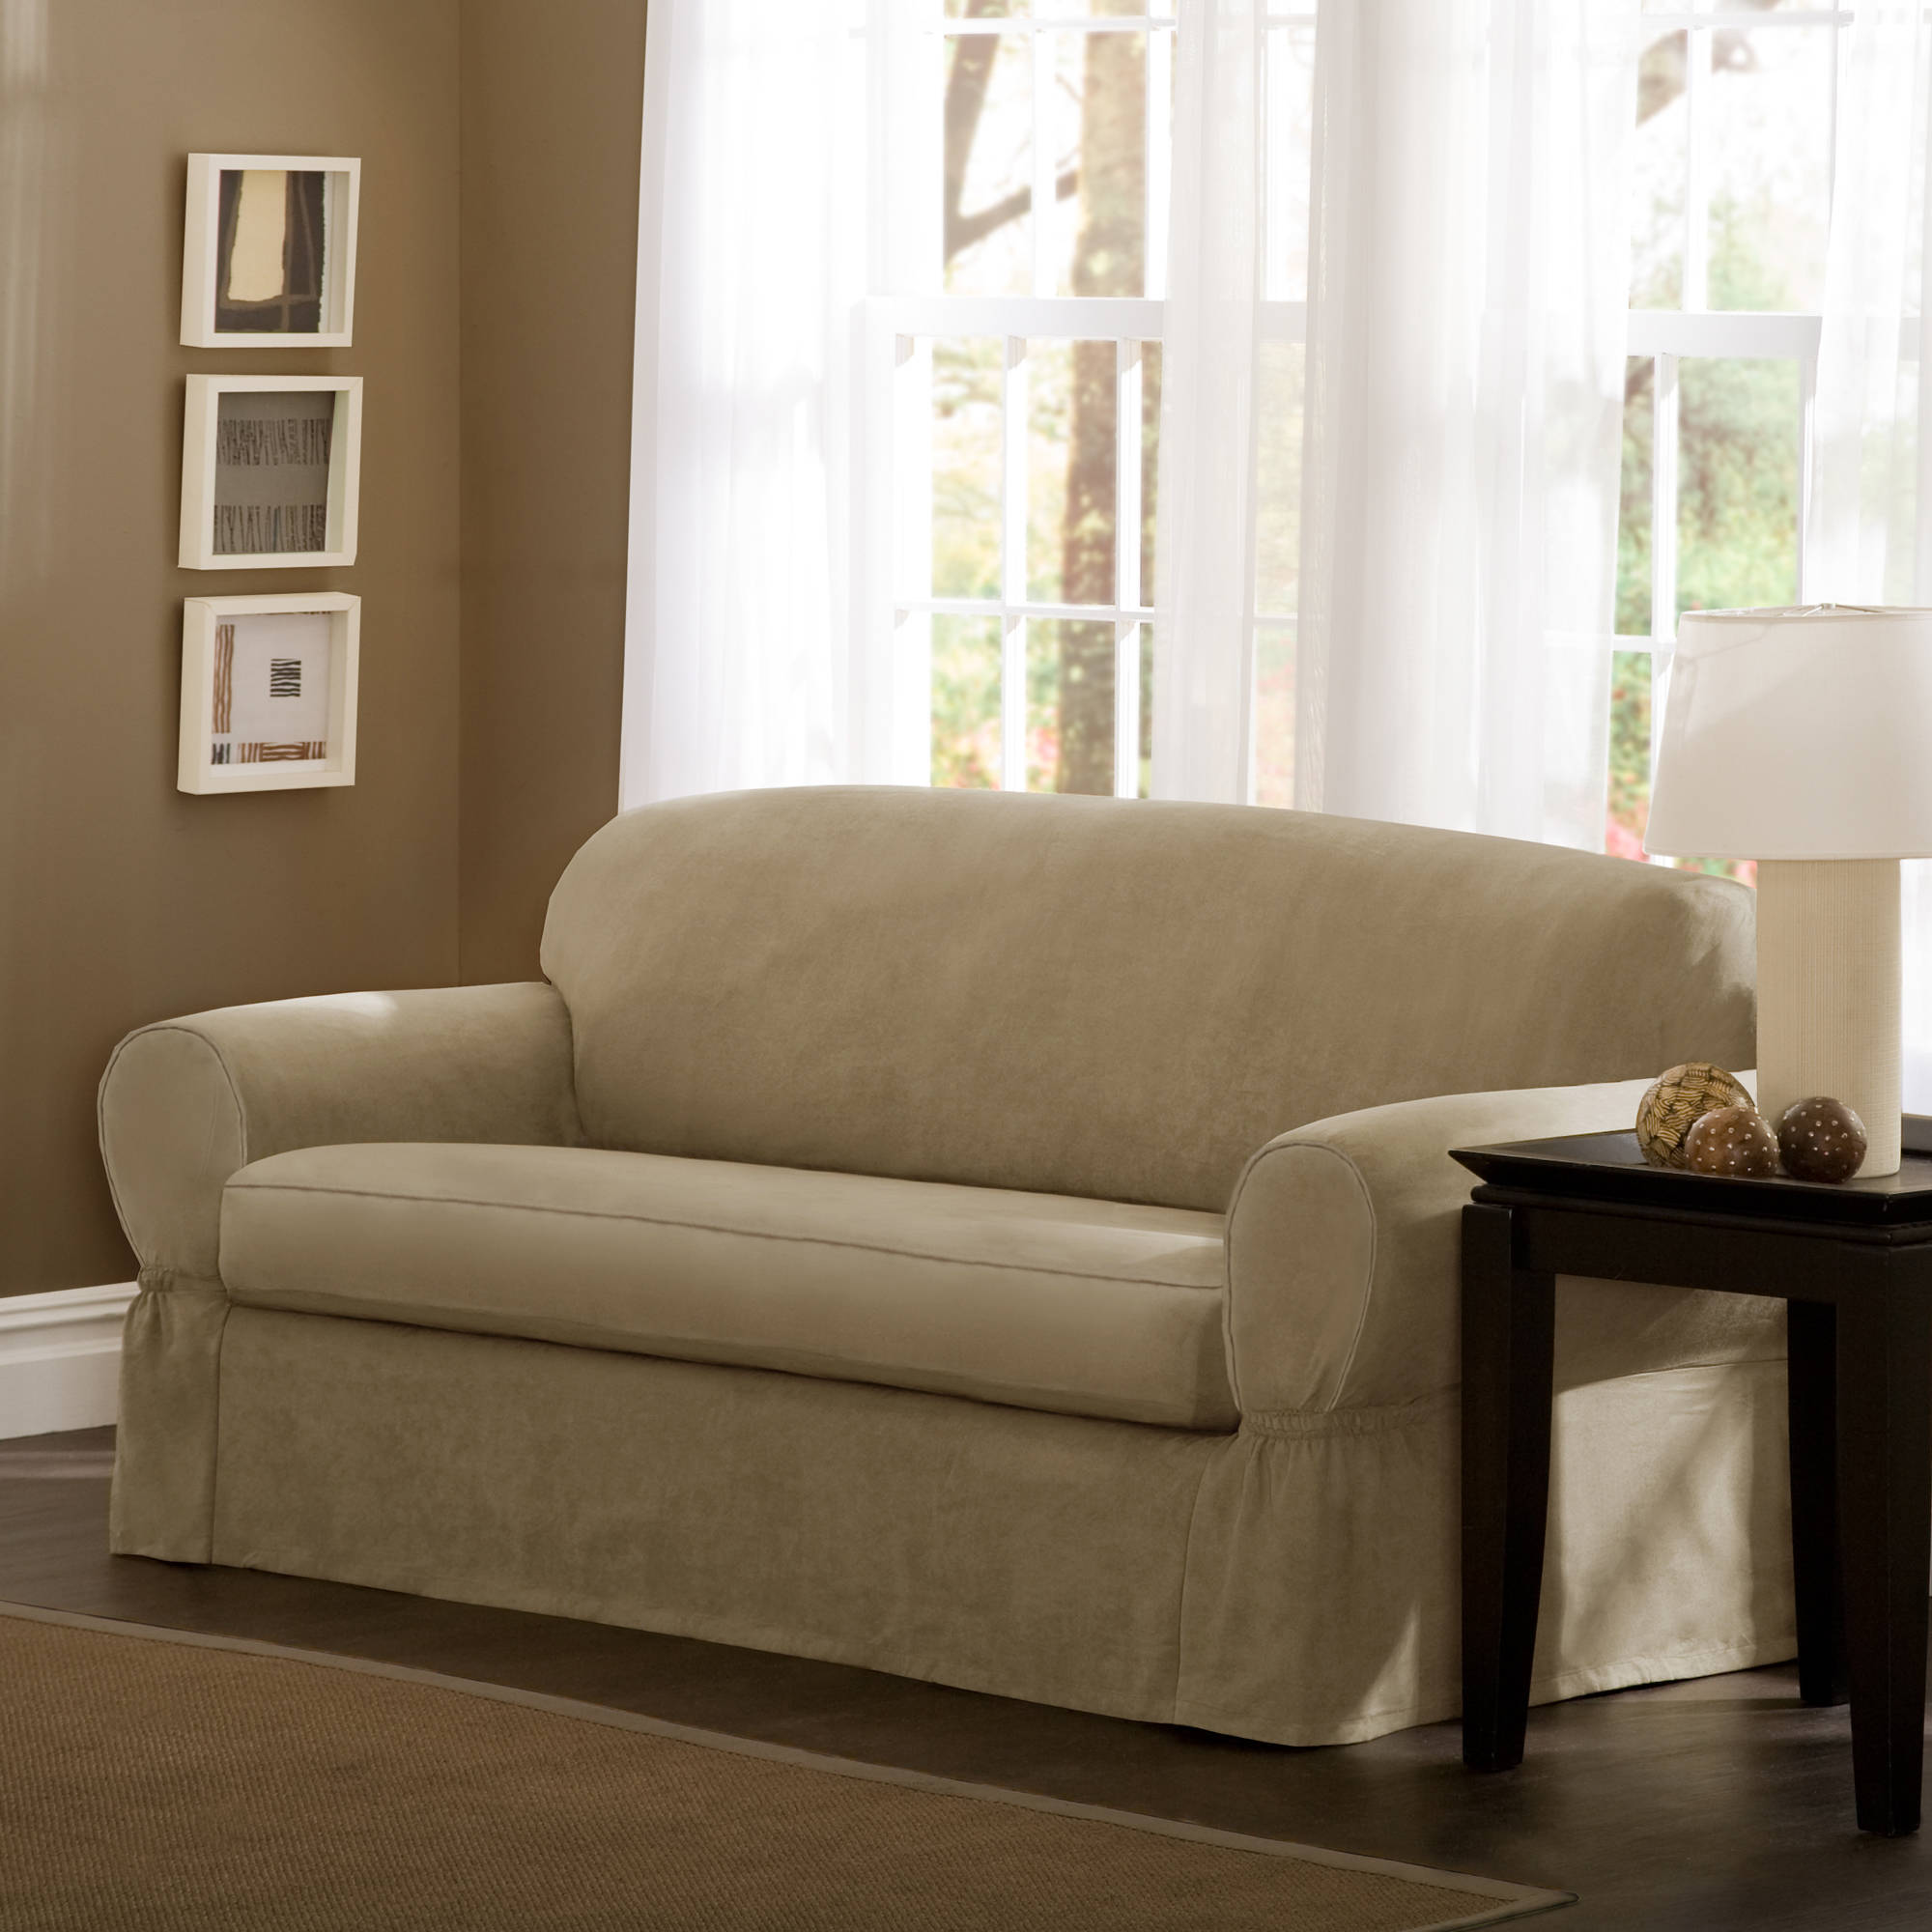 Maytex Piped Faux Suede Non Stretch 2 Piece Sofa Furniture